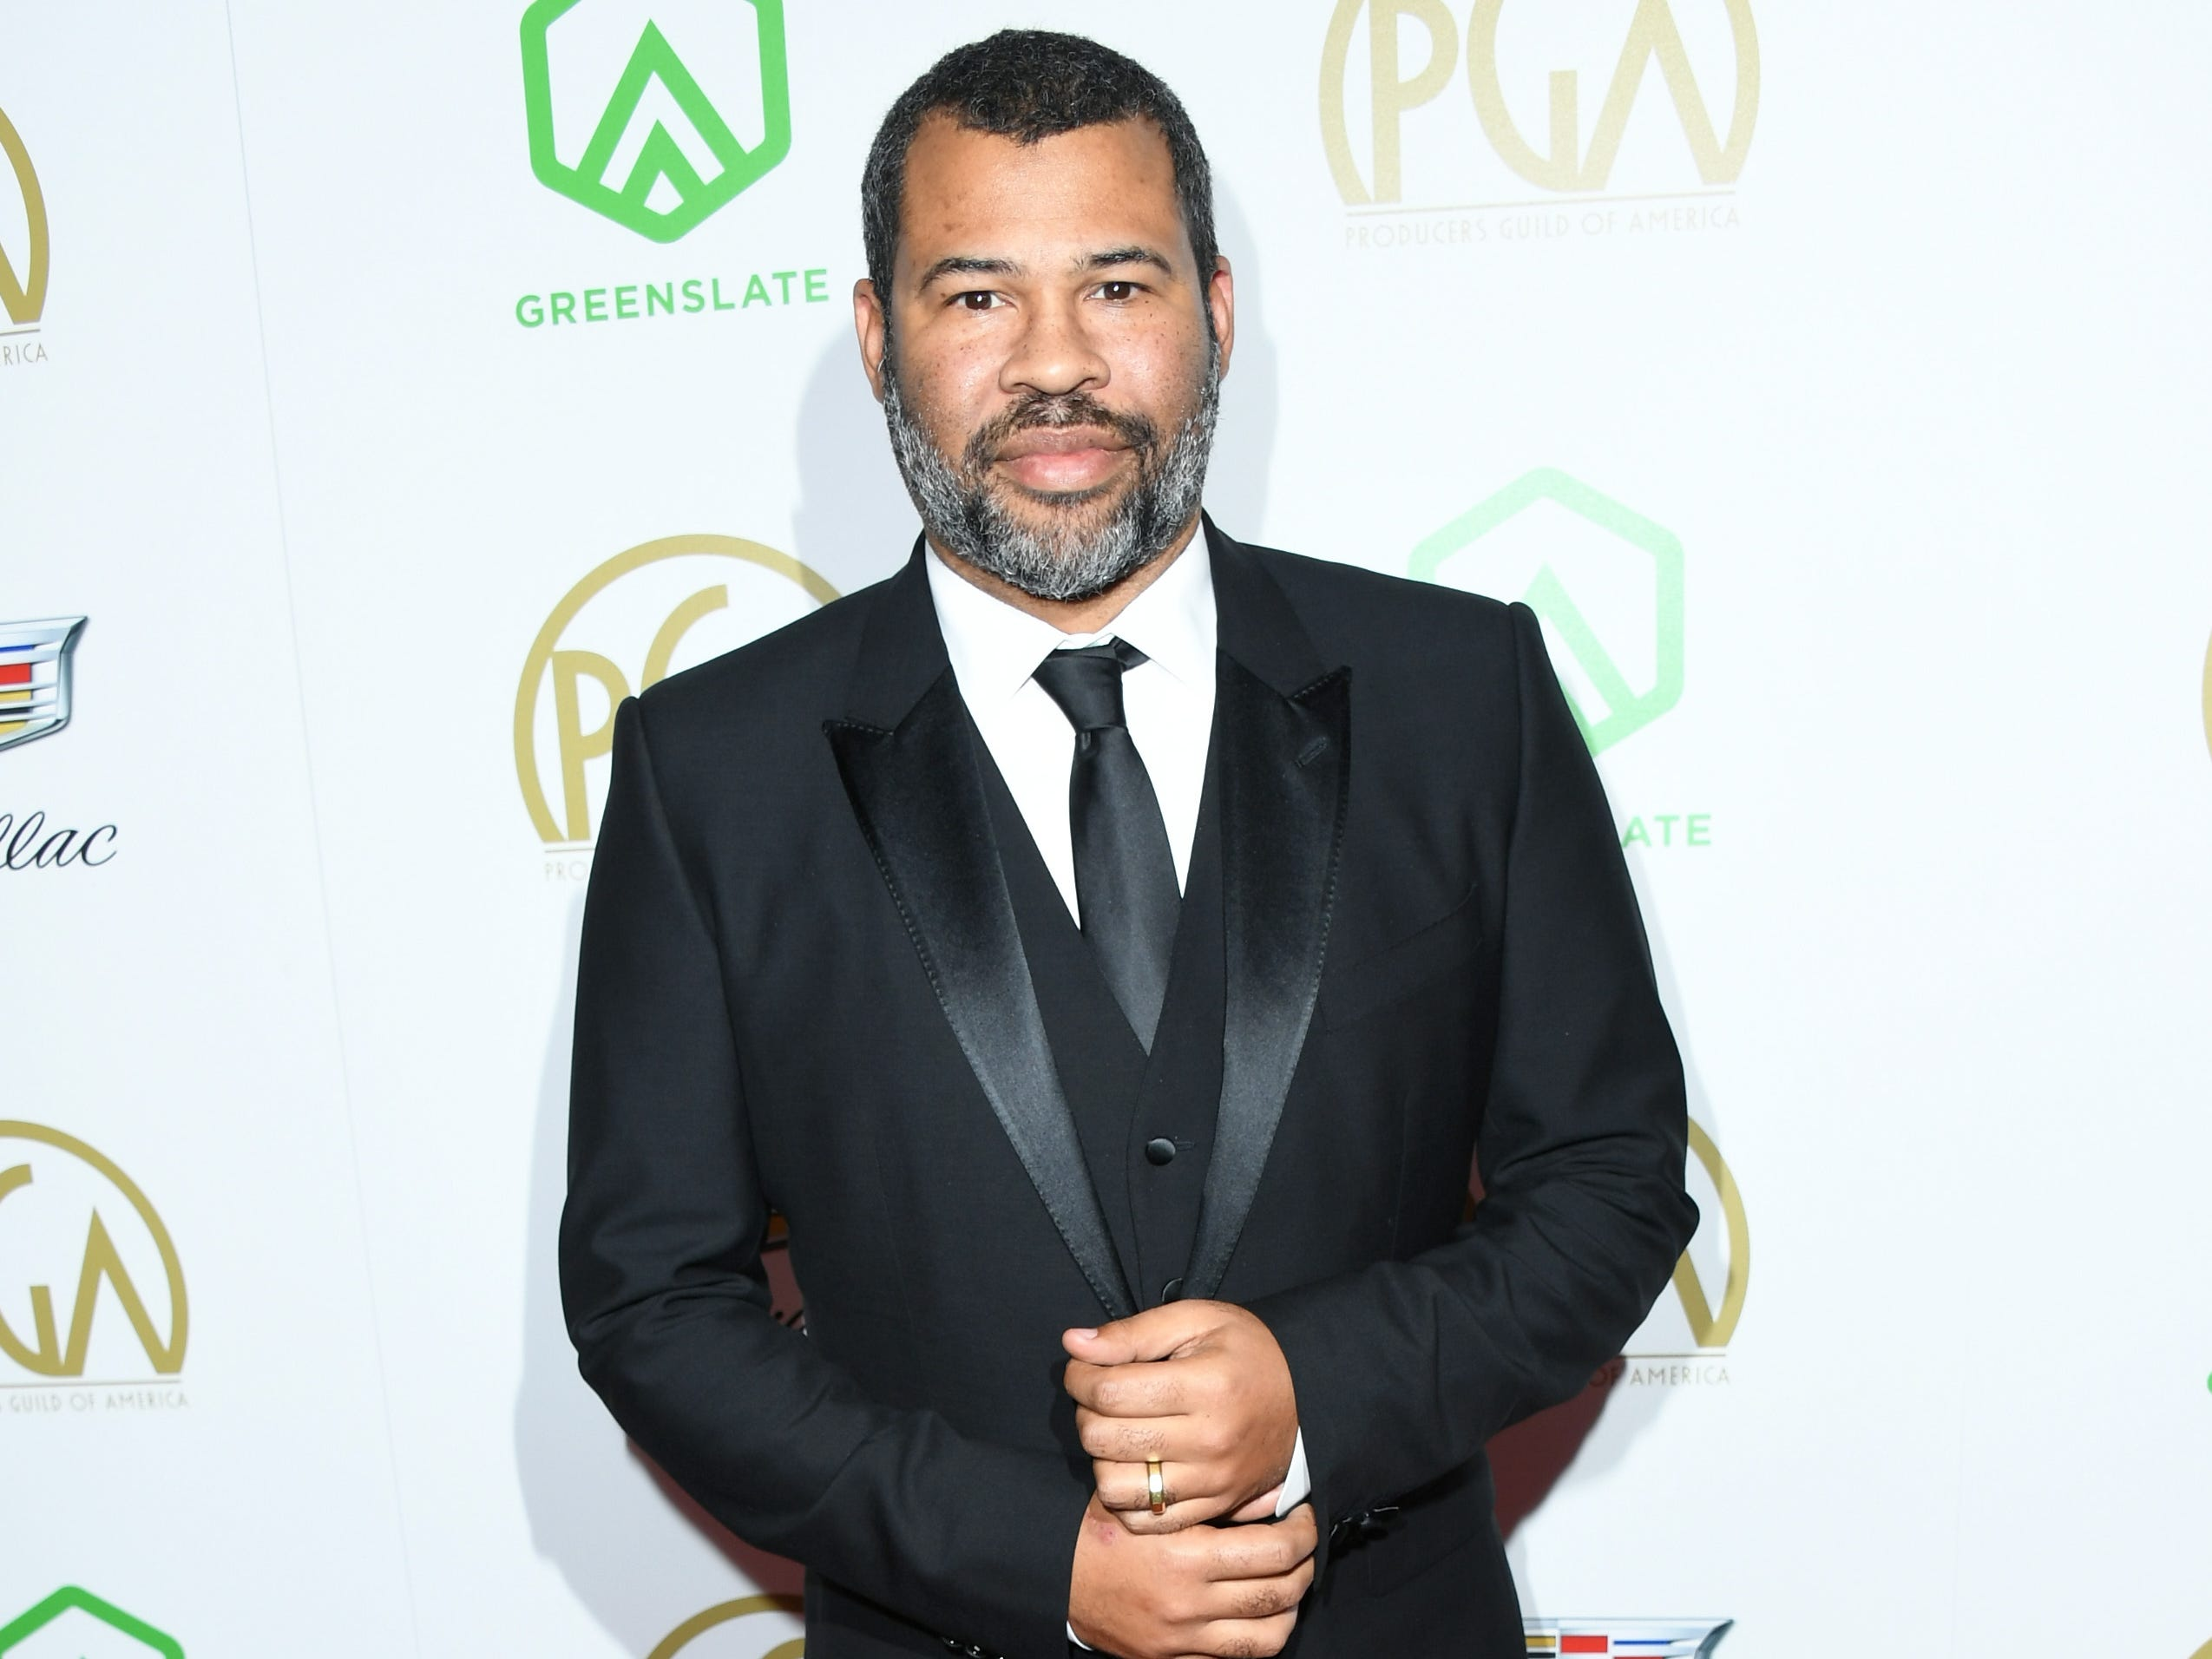 BEVERLY HILLS, CA - JANUARY 19:  Jordan Peele attends the 30th annual Producers Guild Awards at The Beverly Hilton Hotel on January 19, 2019 in Beverly Hills, California.  (Photo by Jon Kopaloff/FilmMagic) ORG XMIT: 775277375 ORIG FILE ID: 1085410208